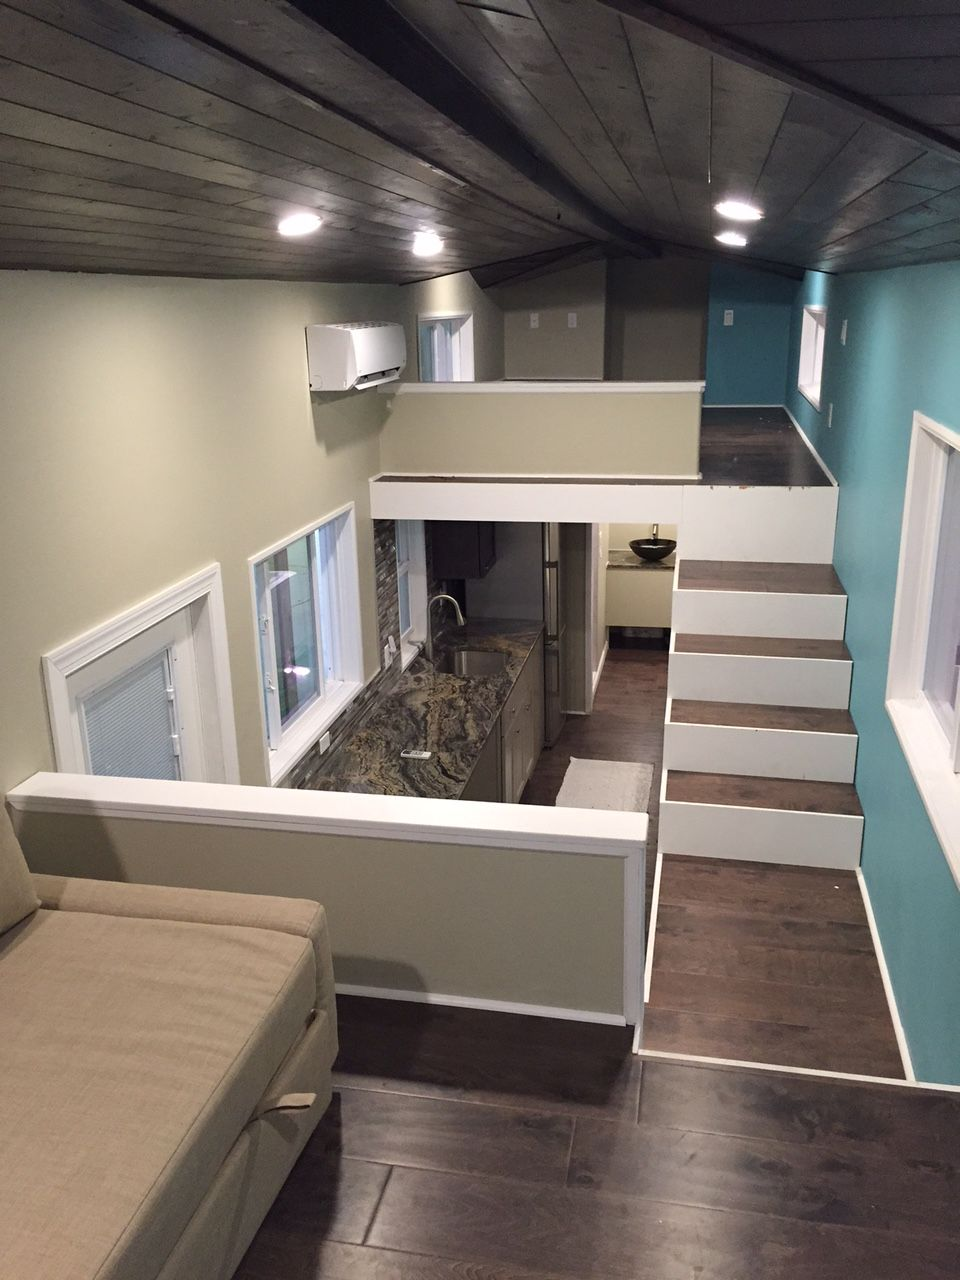 Apartment Interior With 4 Rooms: IMG_2839 This Dual Level Concept Is Pretty Smart...and The